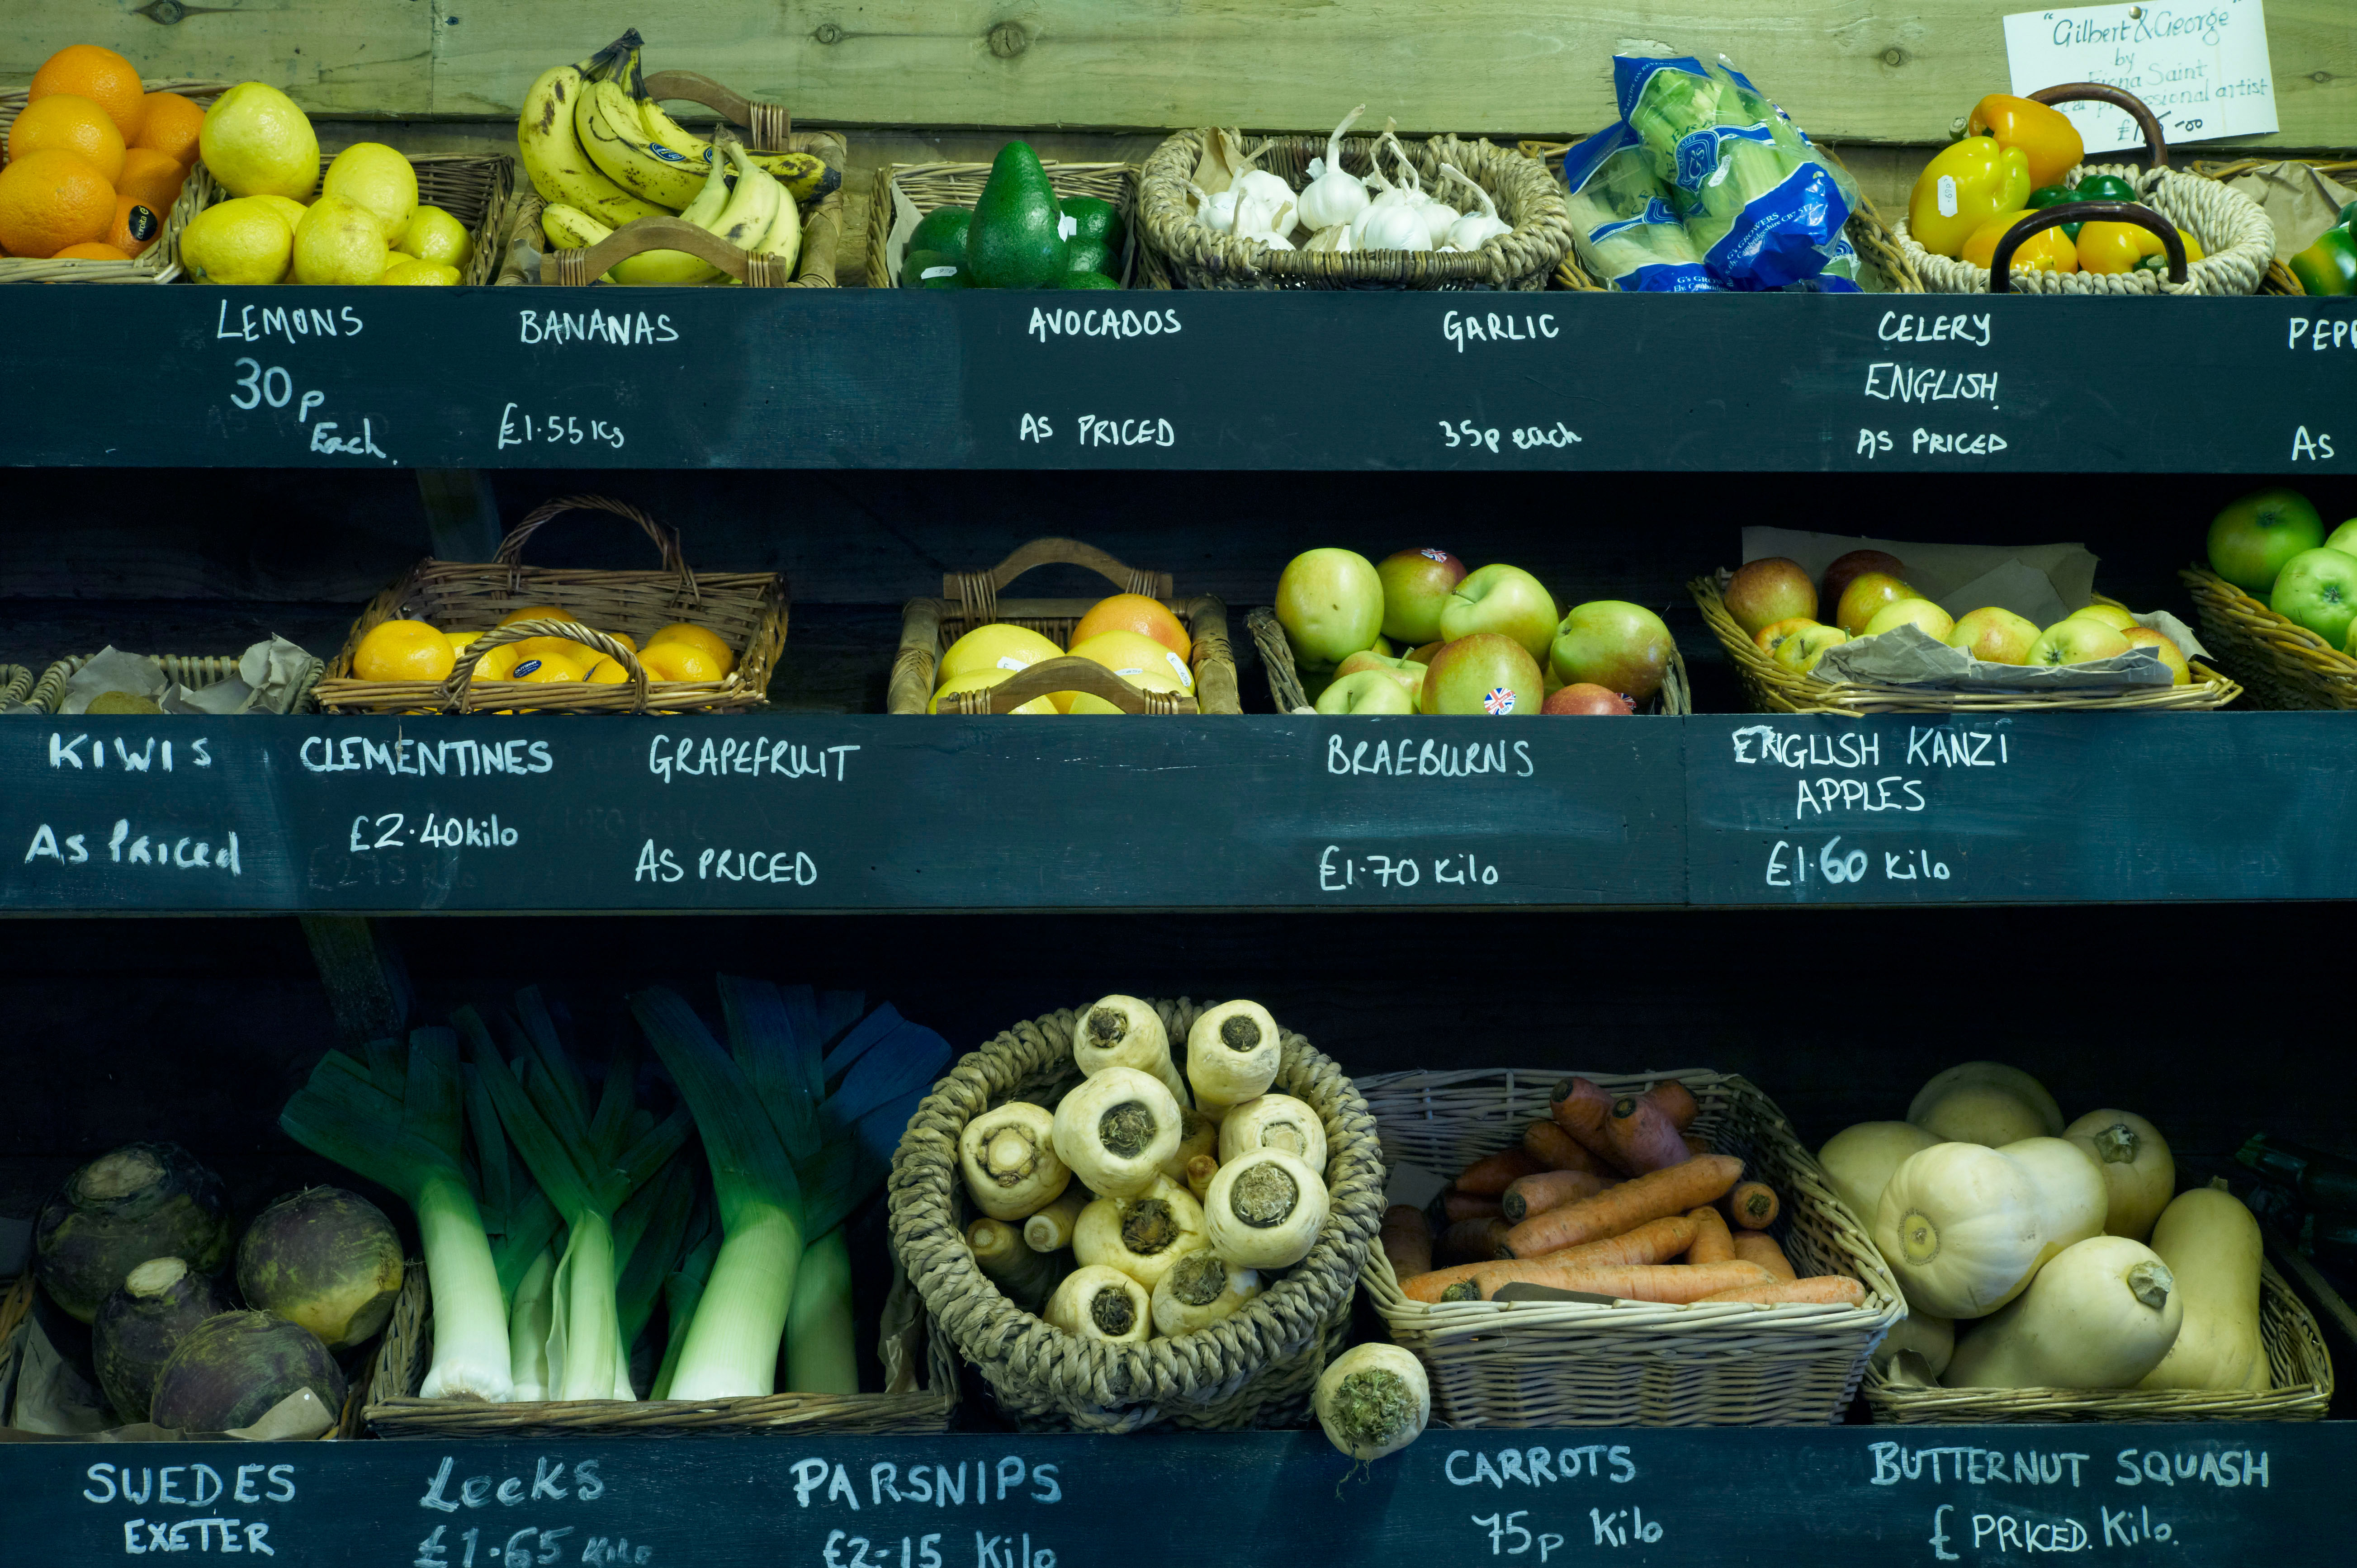 Jason Goodwin: Supermarkets sell 10,000 different things, but it turned out we hardly need any of them - Country Life